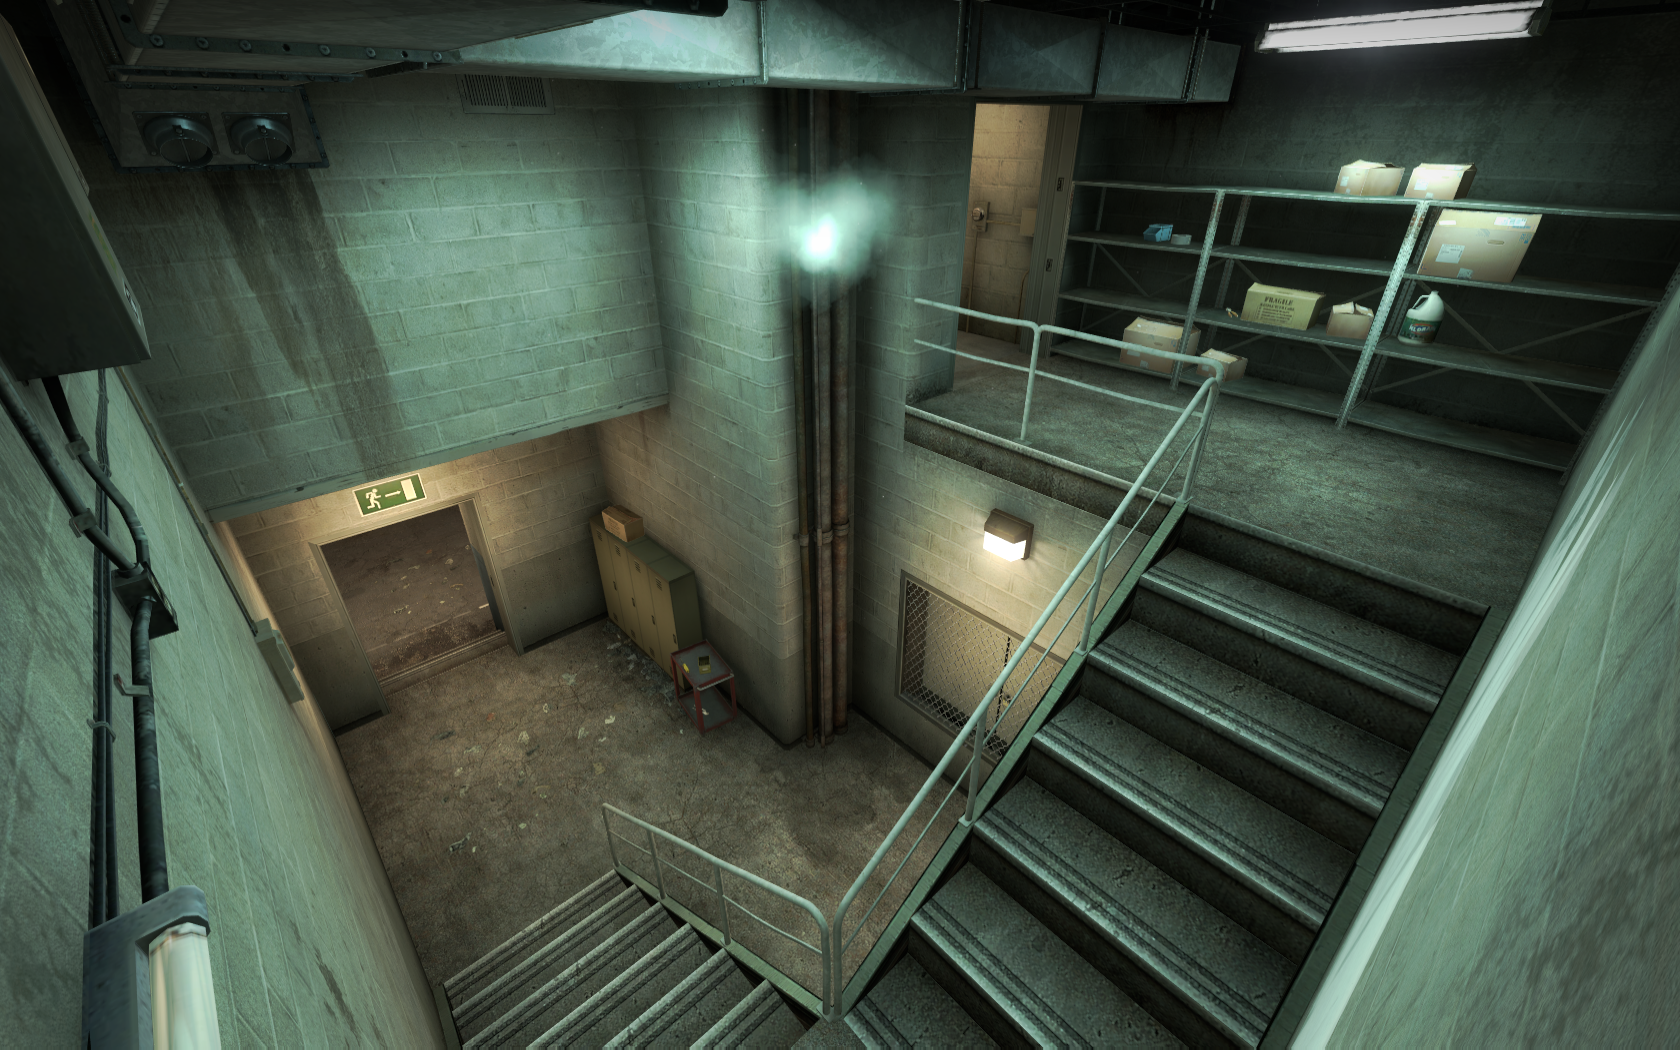 Charmant Csgo Backalley Back Stairs 1.png